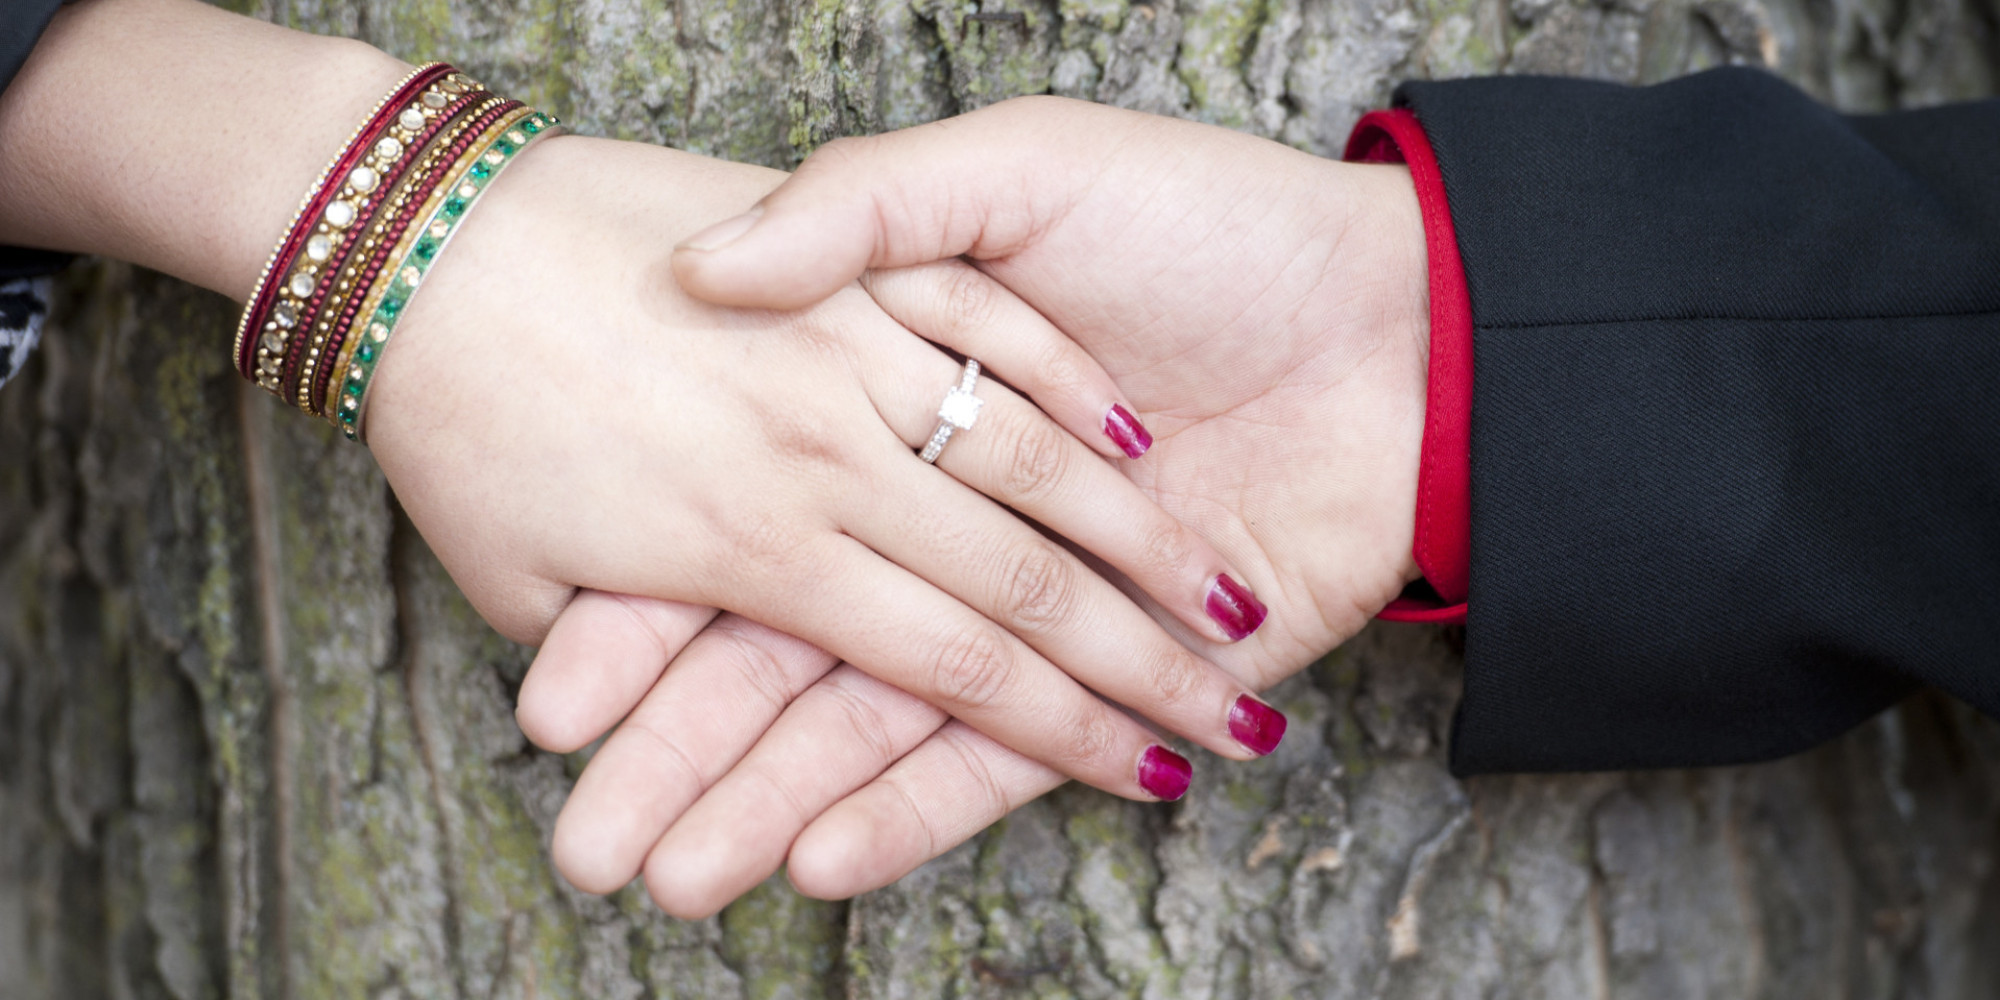 Engagement Rings, Body Image, and Values | HuffPost